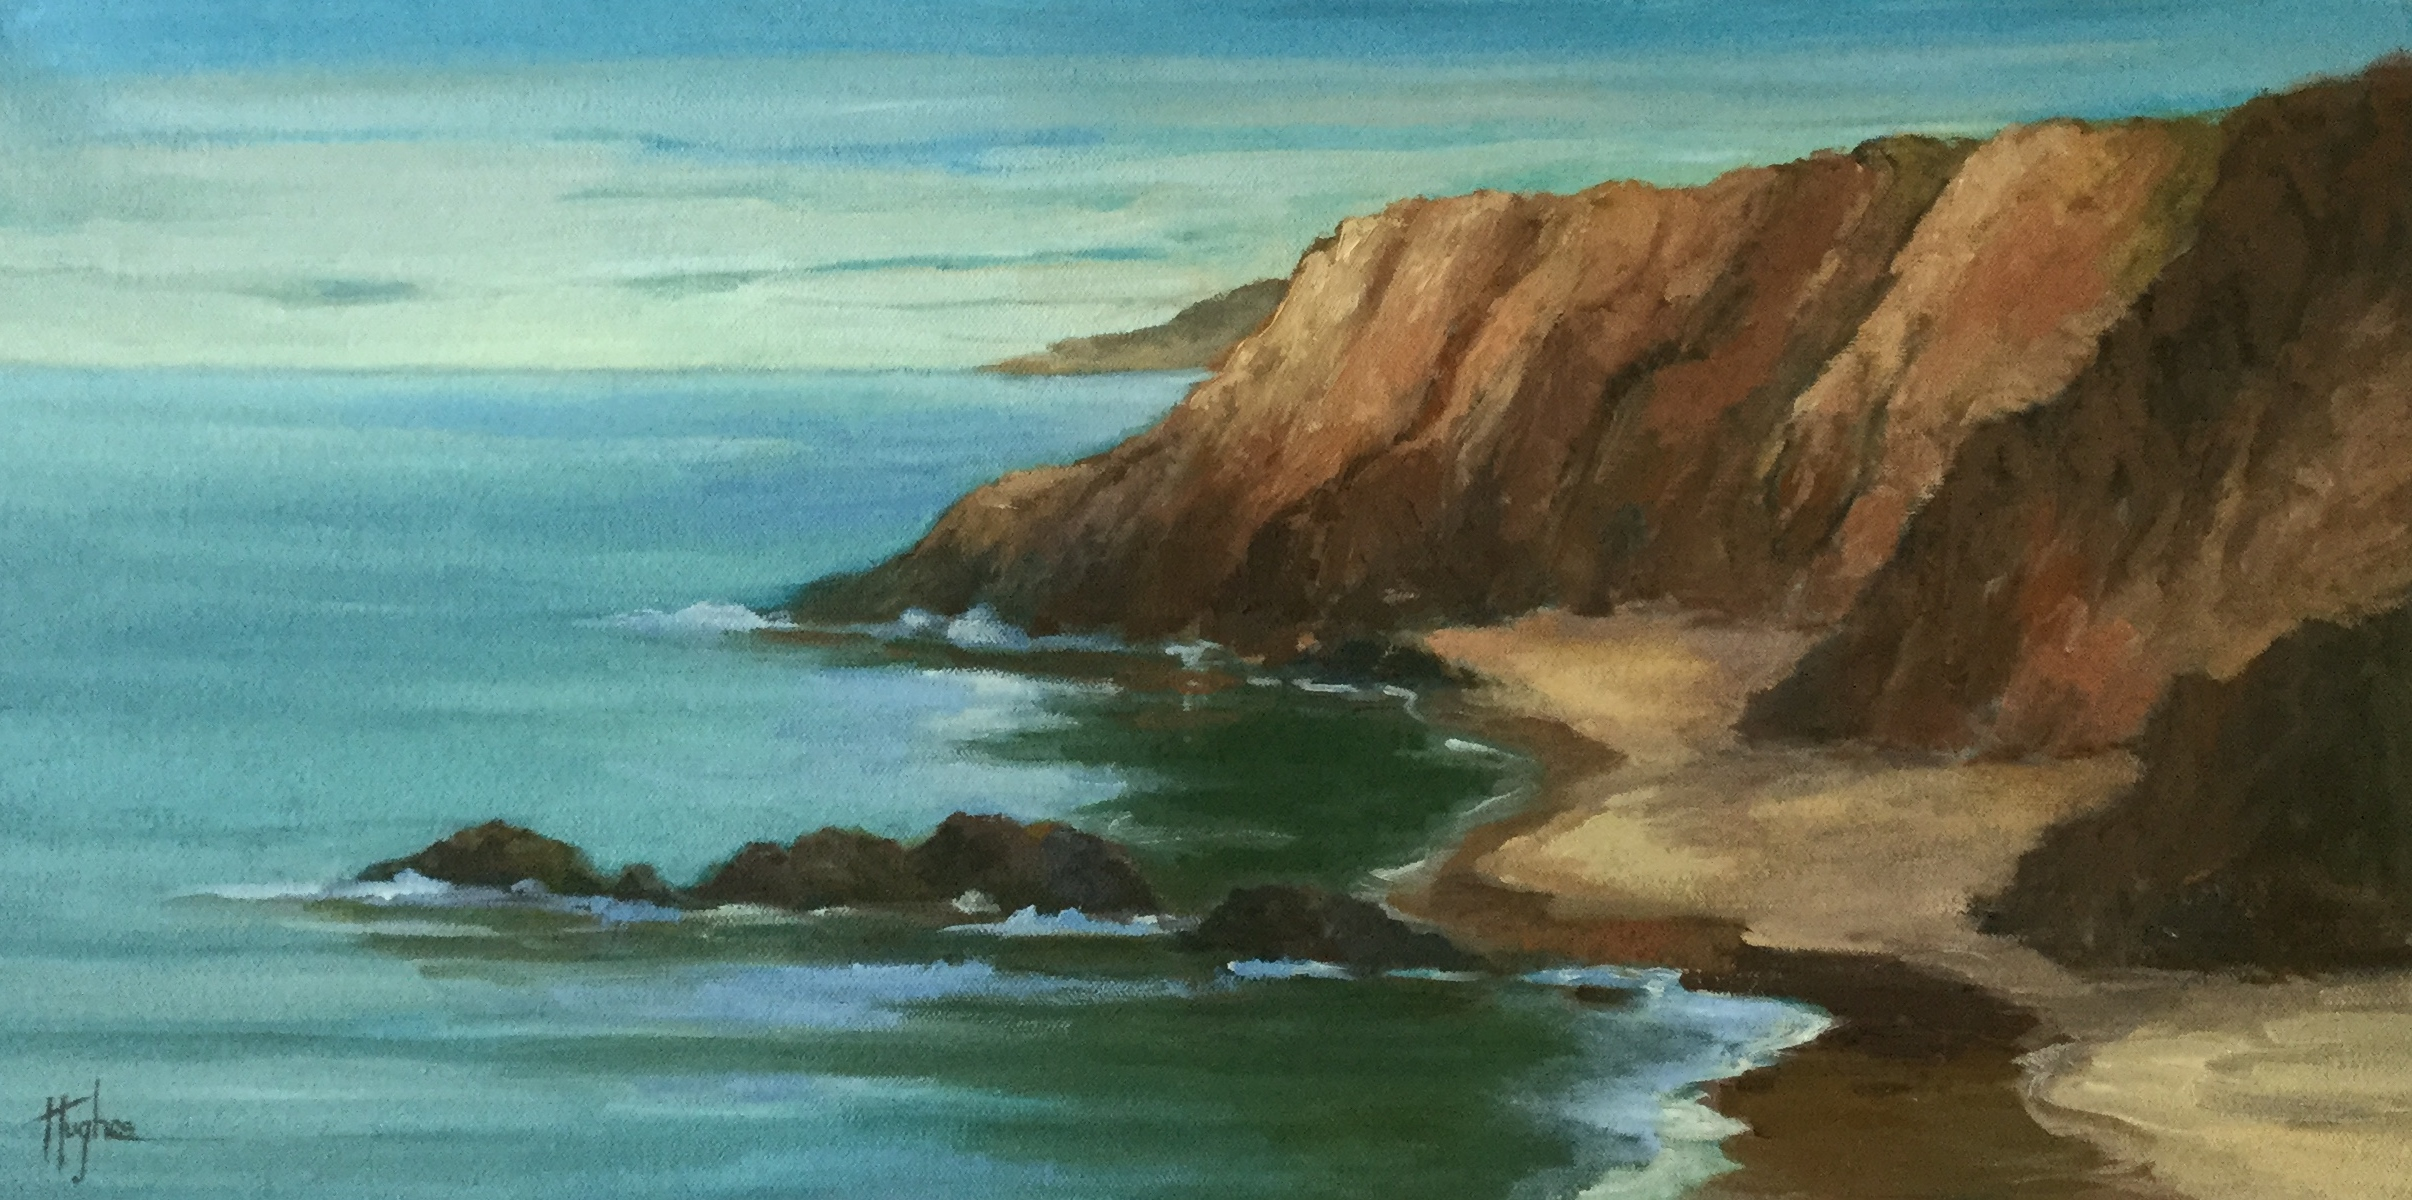 LATE LIGHT AT WHITE POINT , 12 x 24, Oil on Canvas, Second color sketch completed for LATE LIGHT